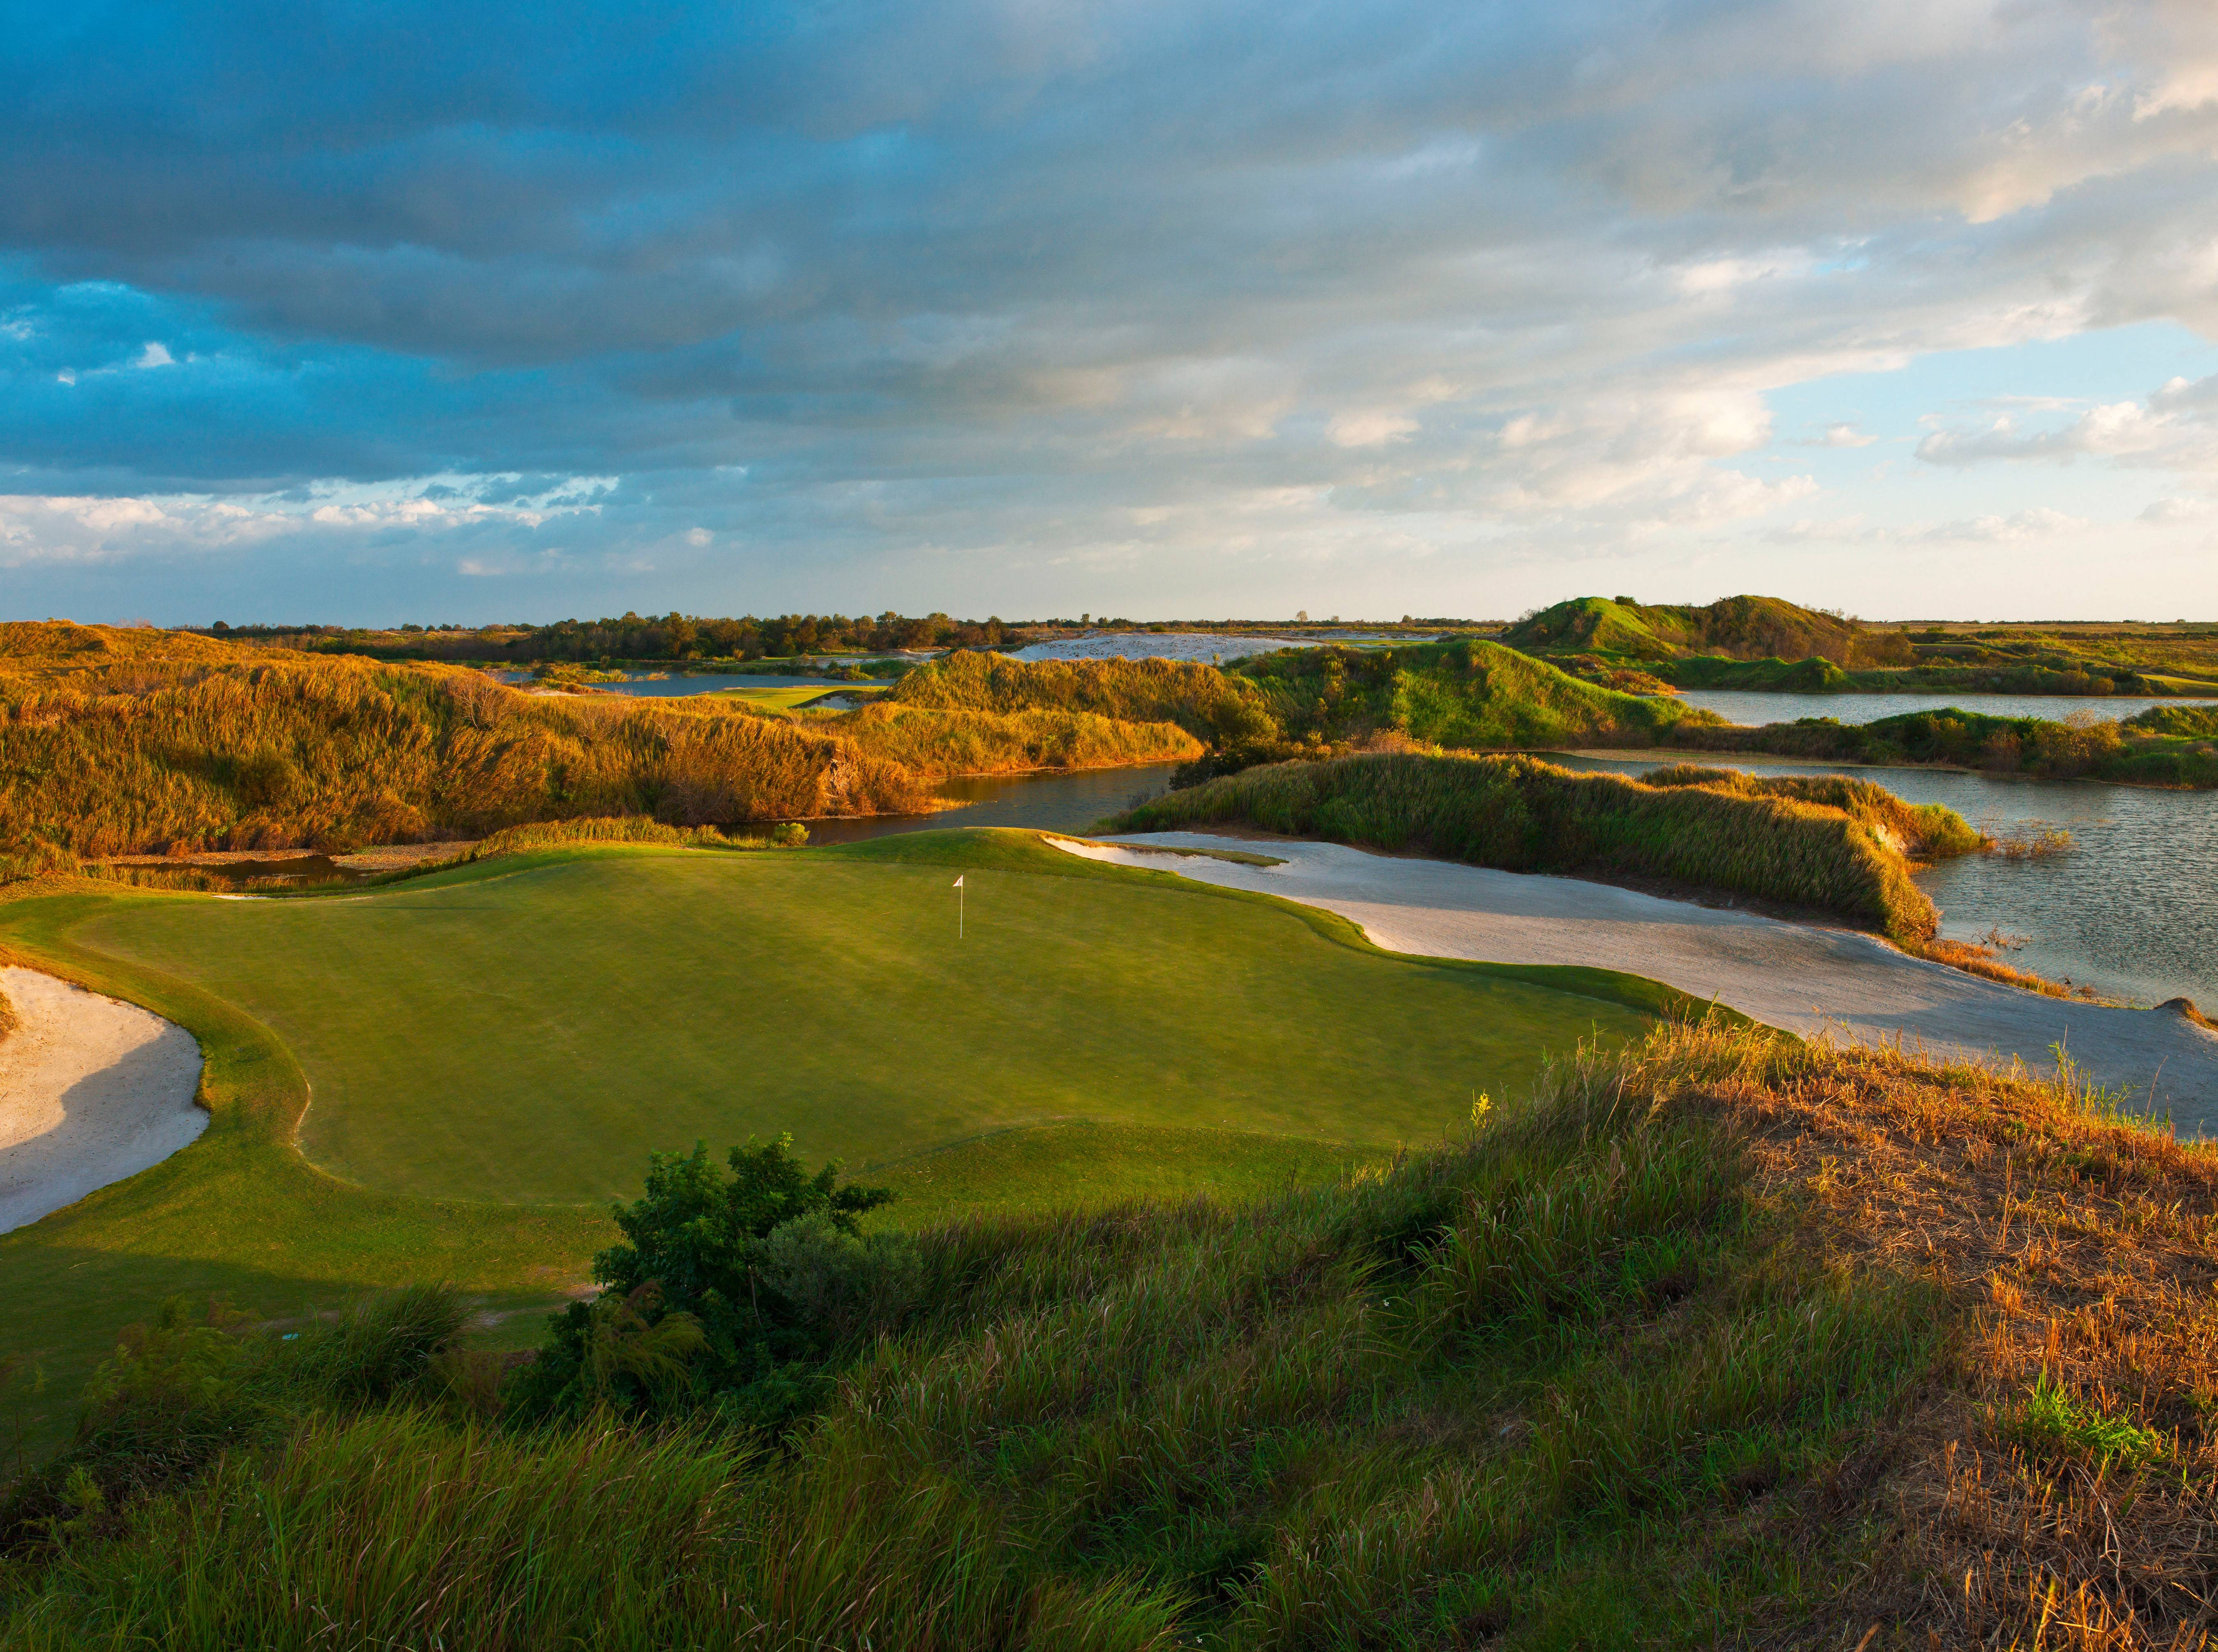 The new 16,000-acre luxury property called Streamsong has edgy modern architecture and two public golf courses and is located on what was once a phosphate mine.